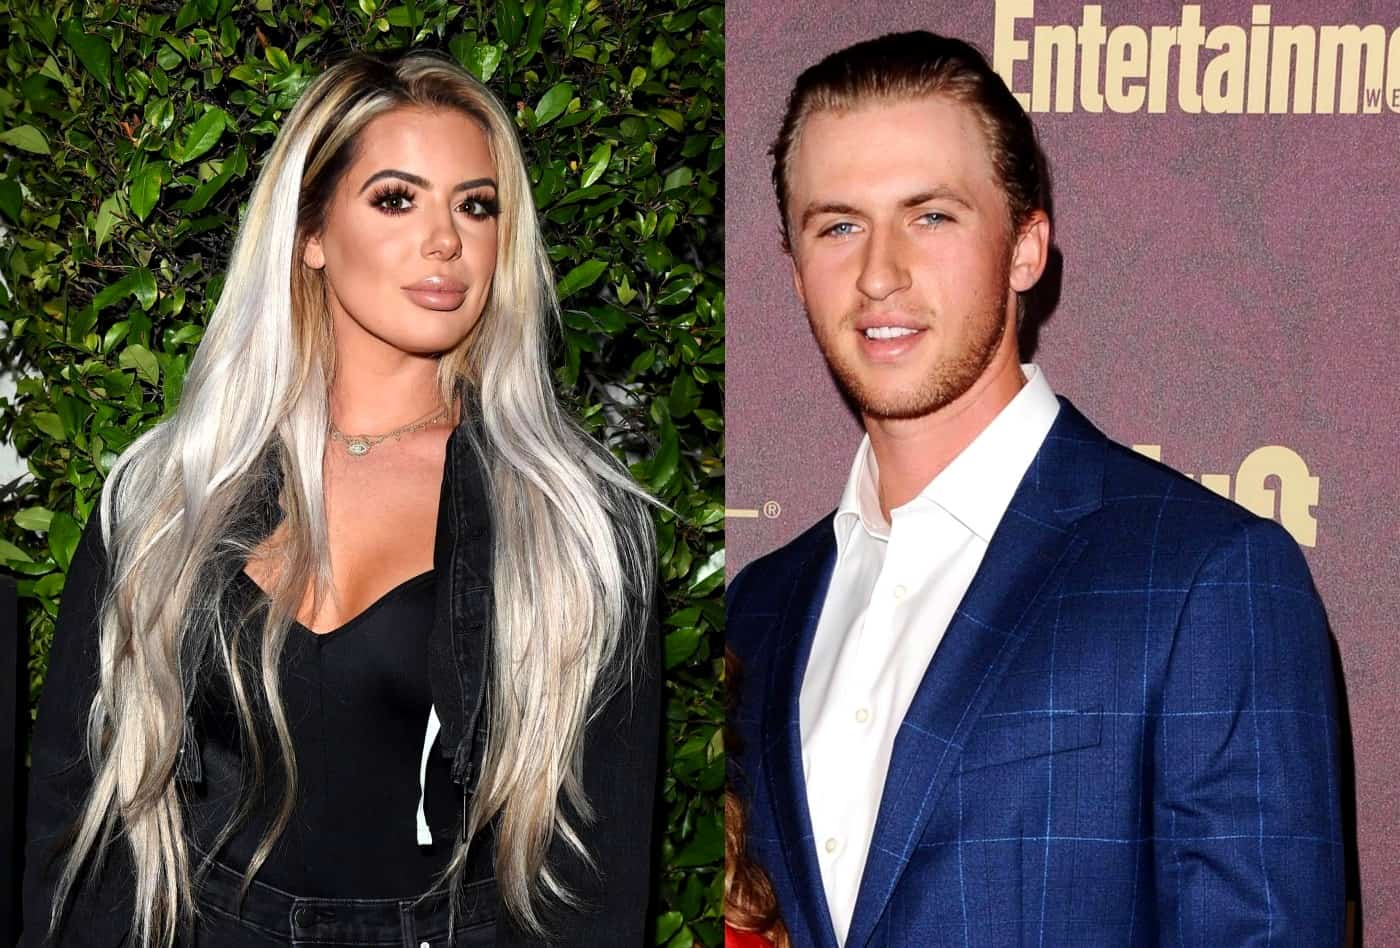 Don't Be Tardy's Brielle Biermann Slams Ex-Boyfriend Michael Kopec